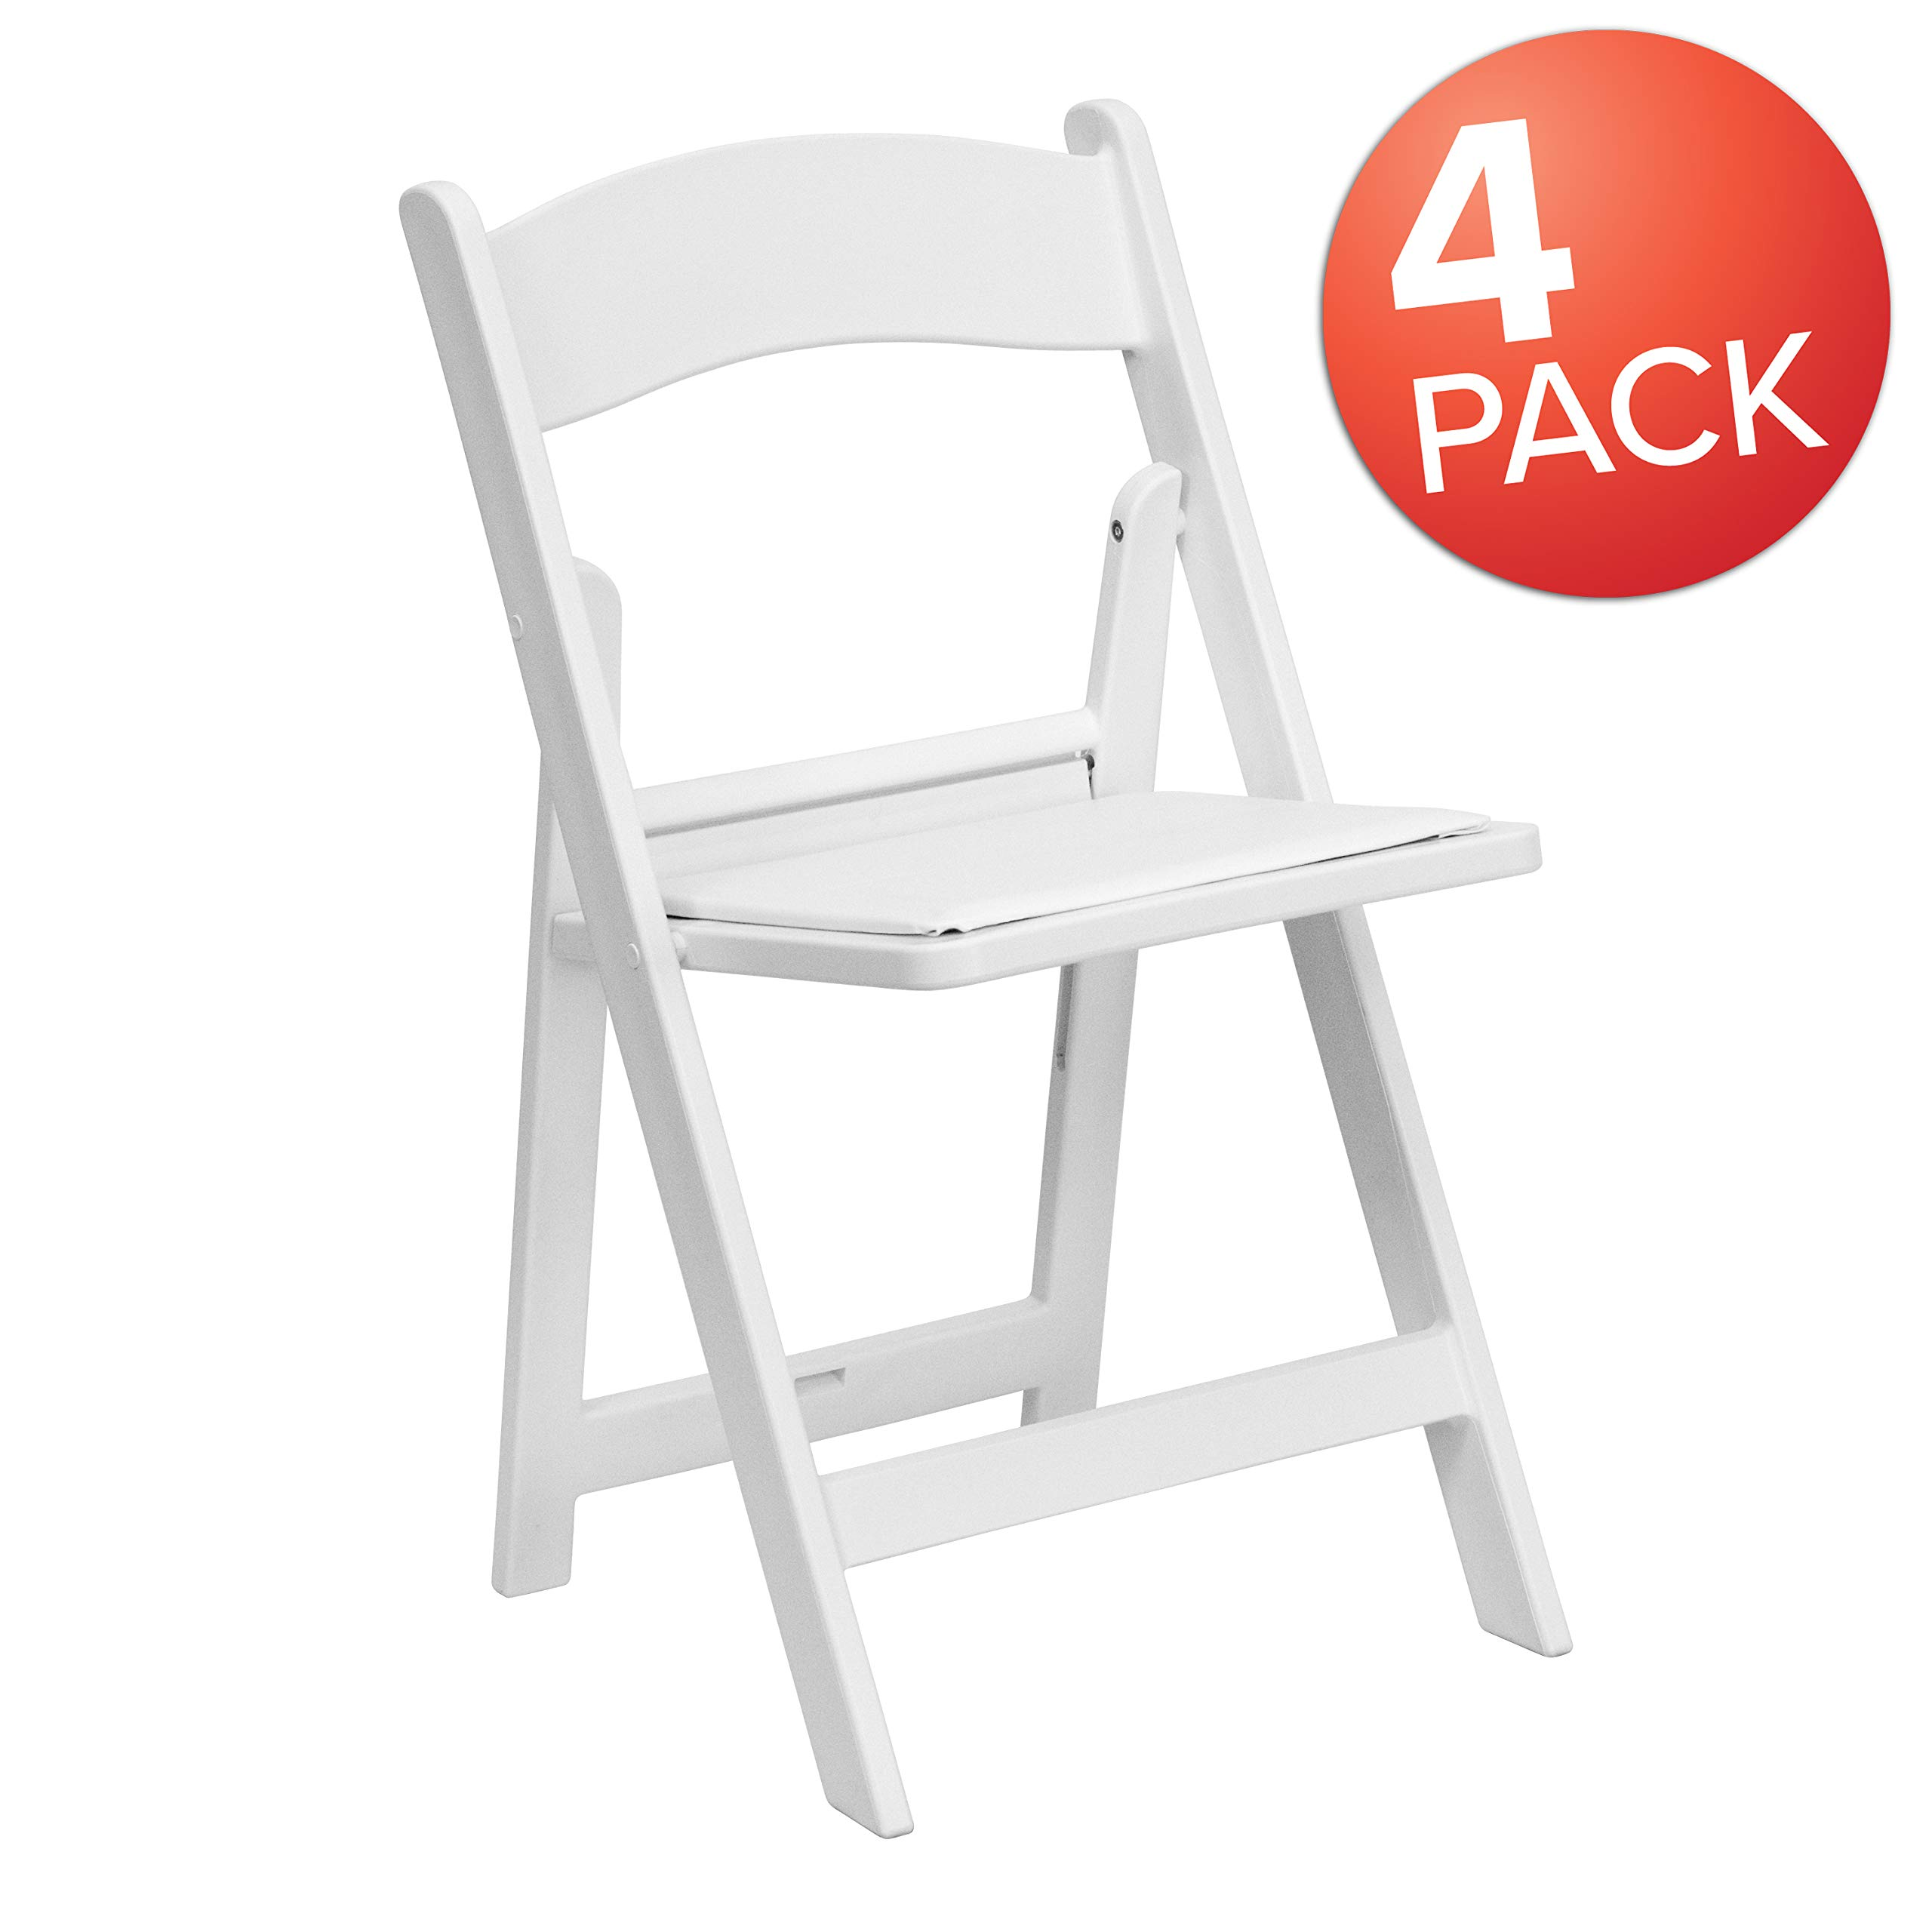 Flash Furniture 4 Pk. HERCULES Series 1000 lb. Capacity White Resin Folding Chair with White Vinyl Padded Seat by Flash Furniture